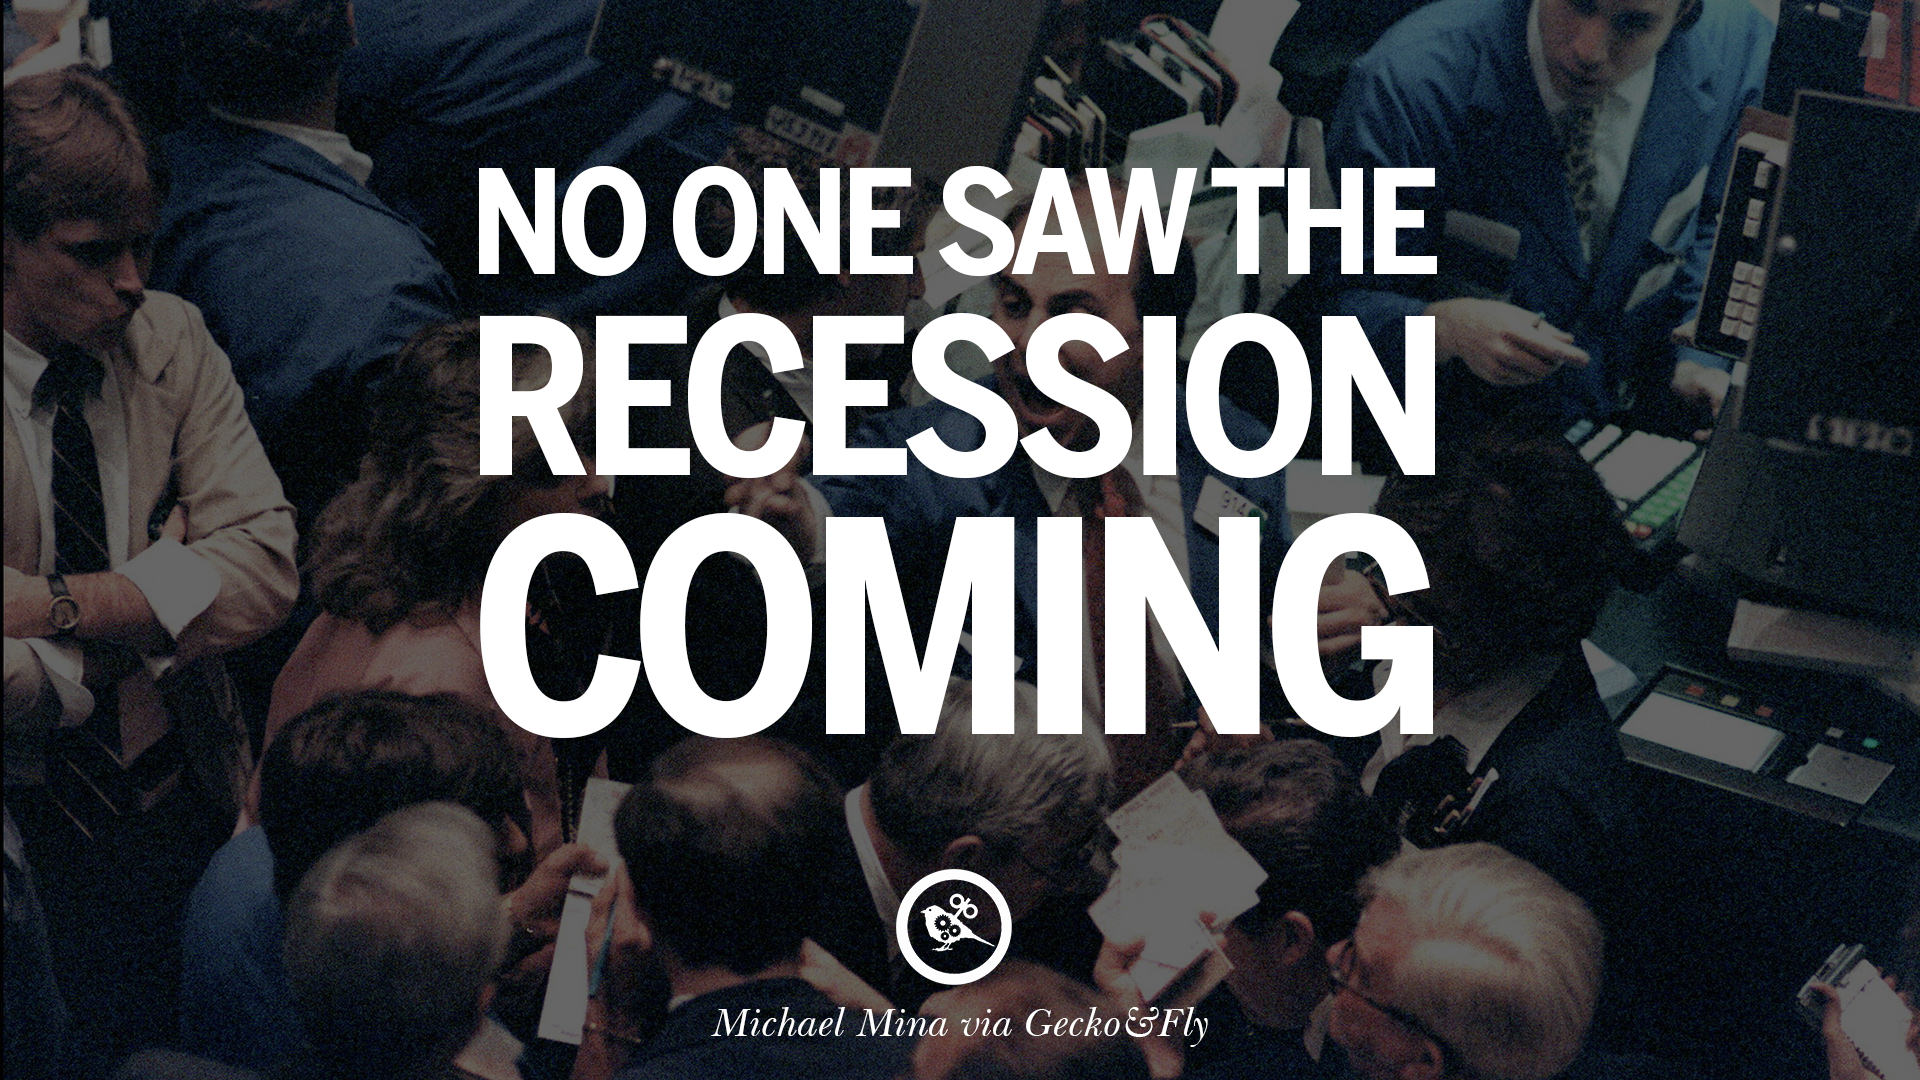 the current recession Translating this definition of a moderate recession into gdp growth rates for the next few years, a moderate global recession starting in the second half of 2016 means global real gdp growth at market exchange rates declining from its likely current rate of 4% or slightly less, to 25% or less.